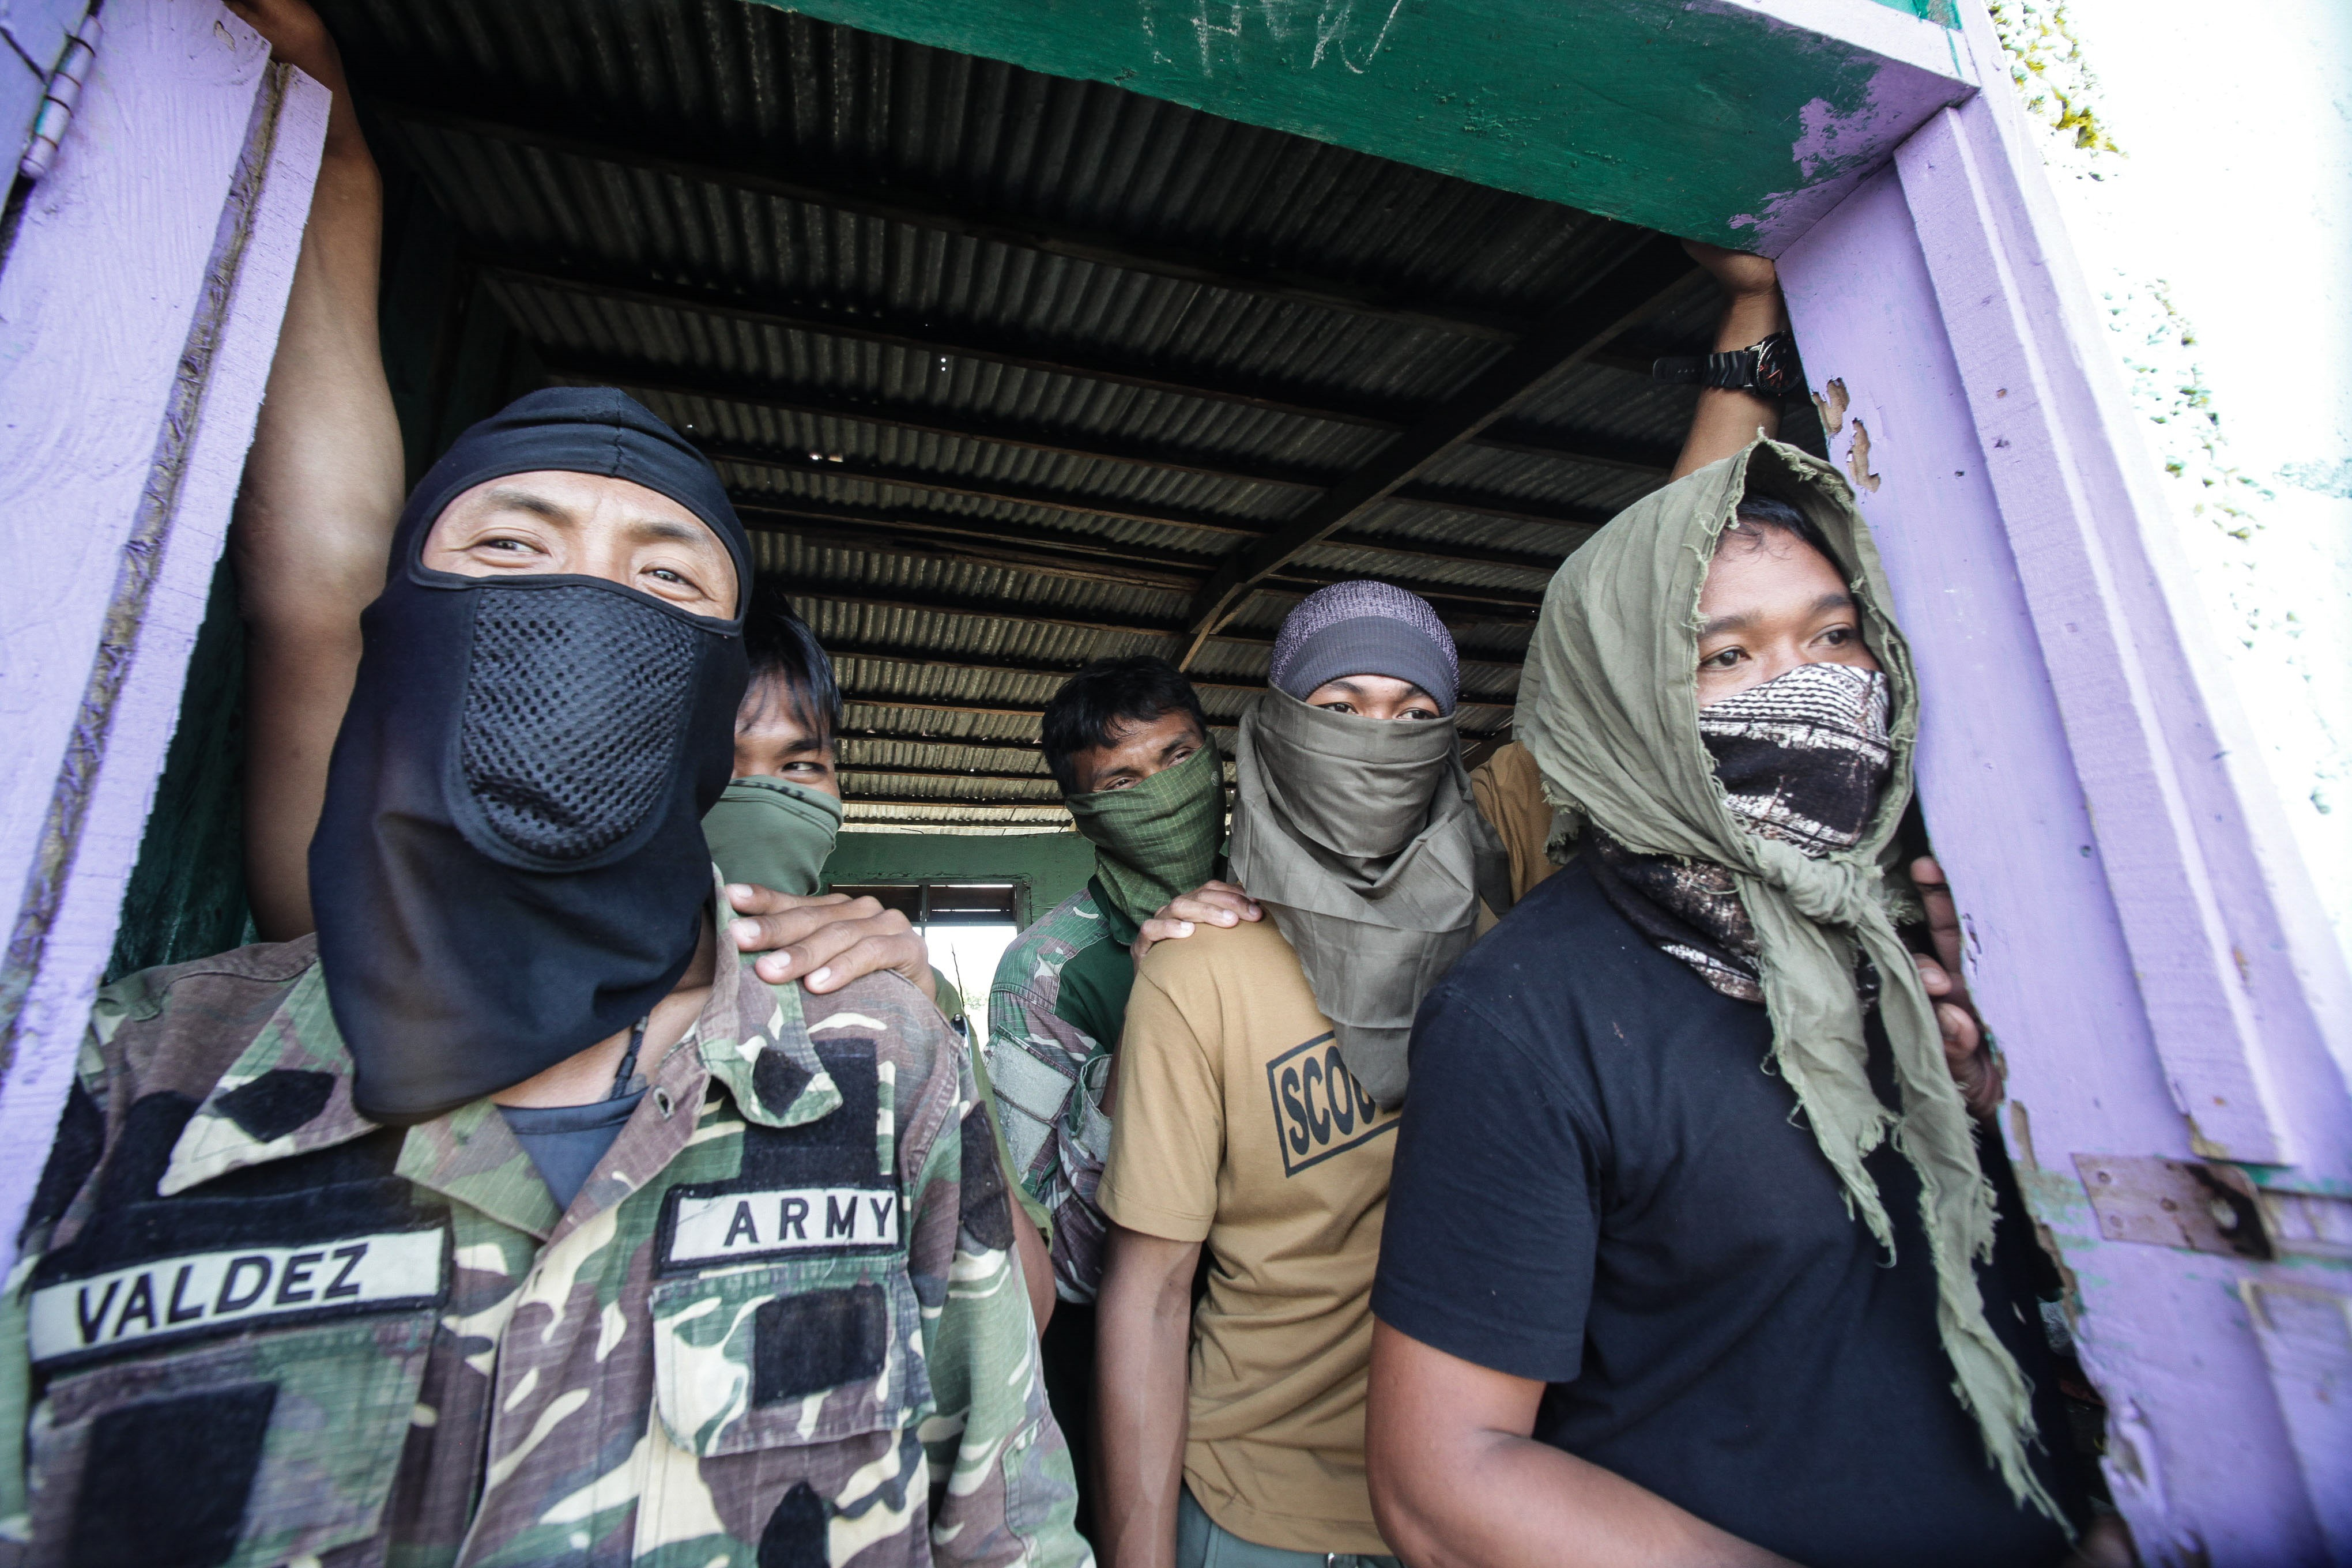 Philippine army soldiers stage a counterterrorism operation against Maute terrorists, who are allegedly linked with ISIS, in  Butig, the Philippine province of Lanao Del Sur, in Mindanao Island, on March 1, 2016